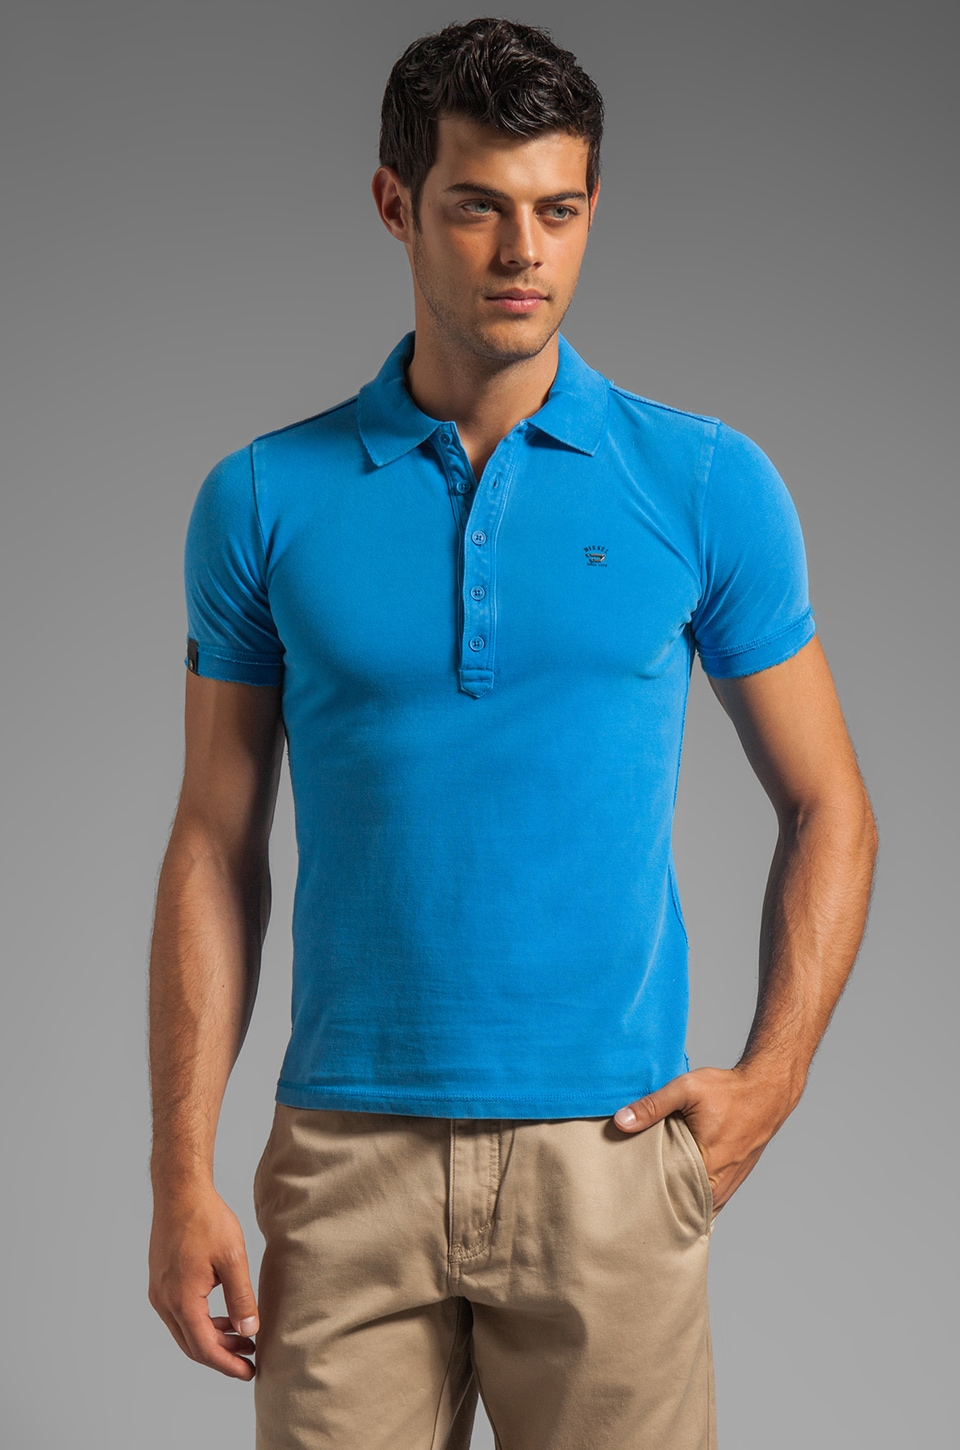 Diesel Apola Polo in Blue